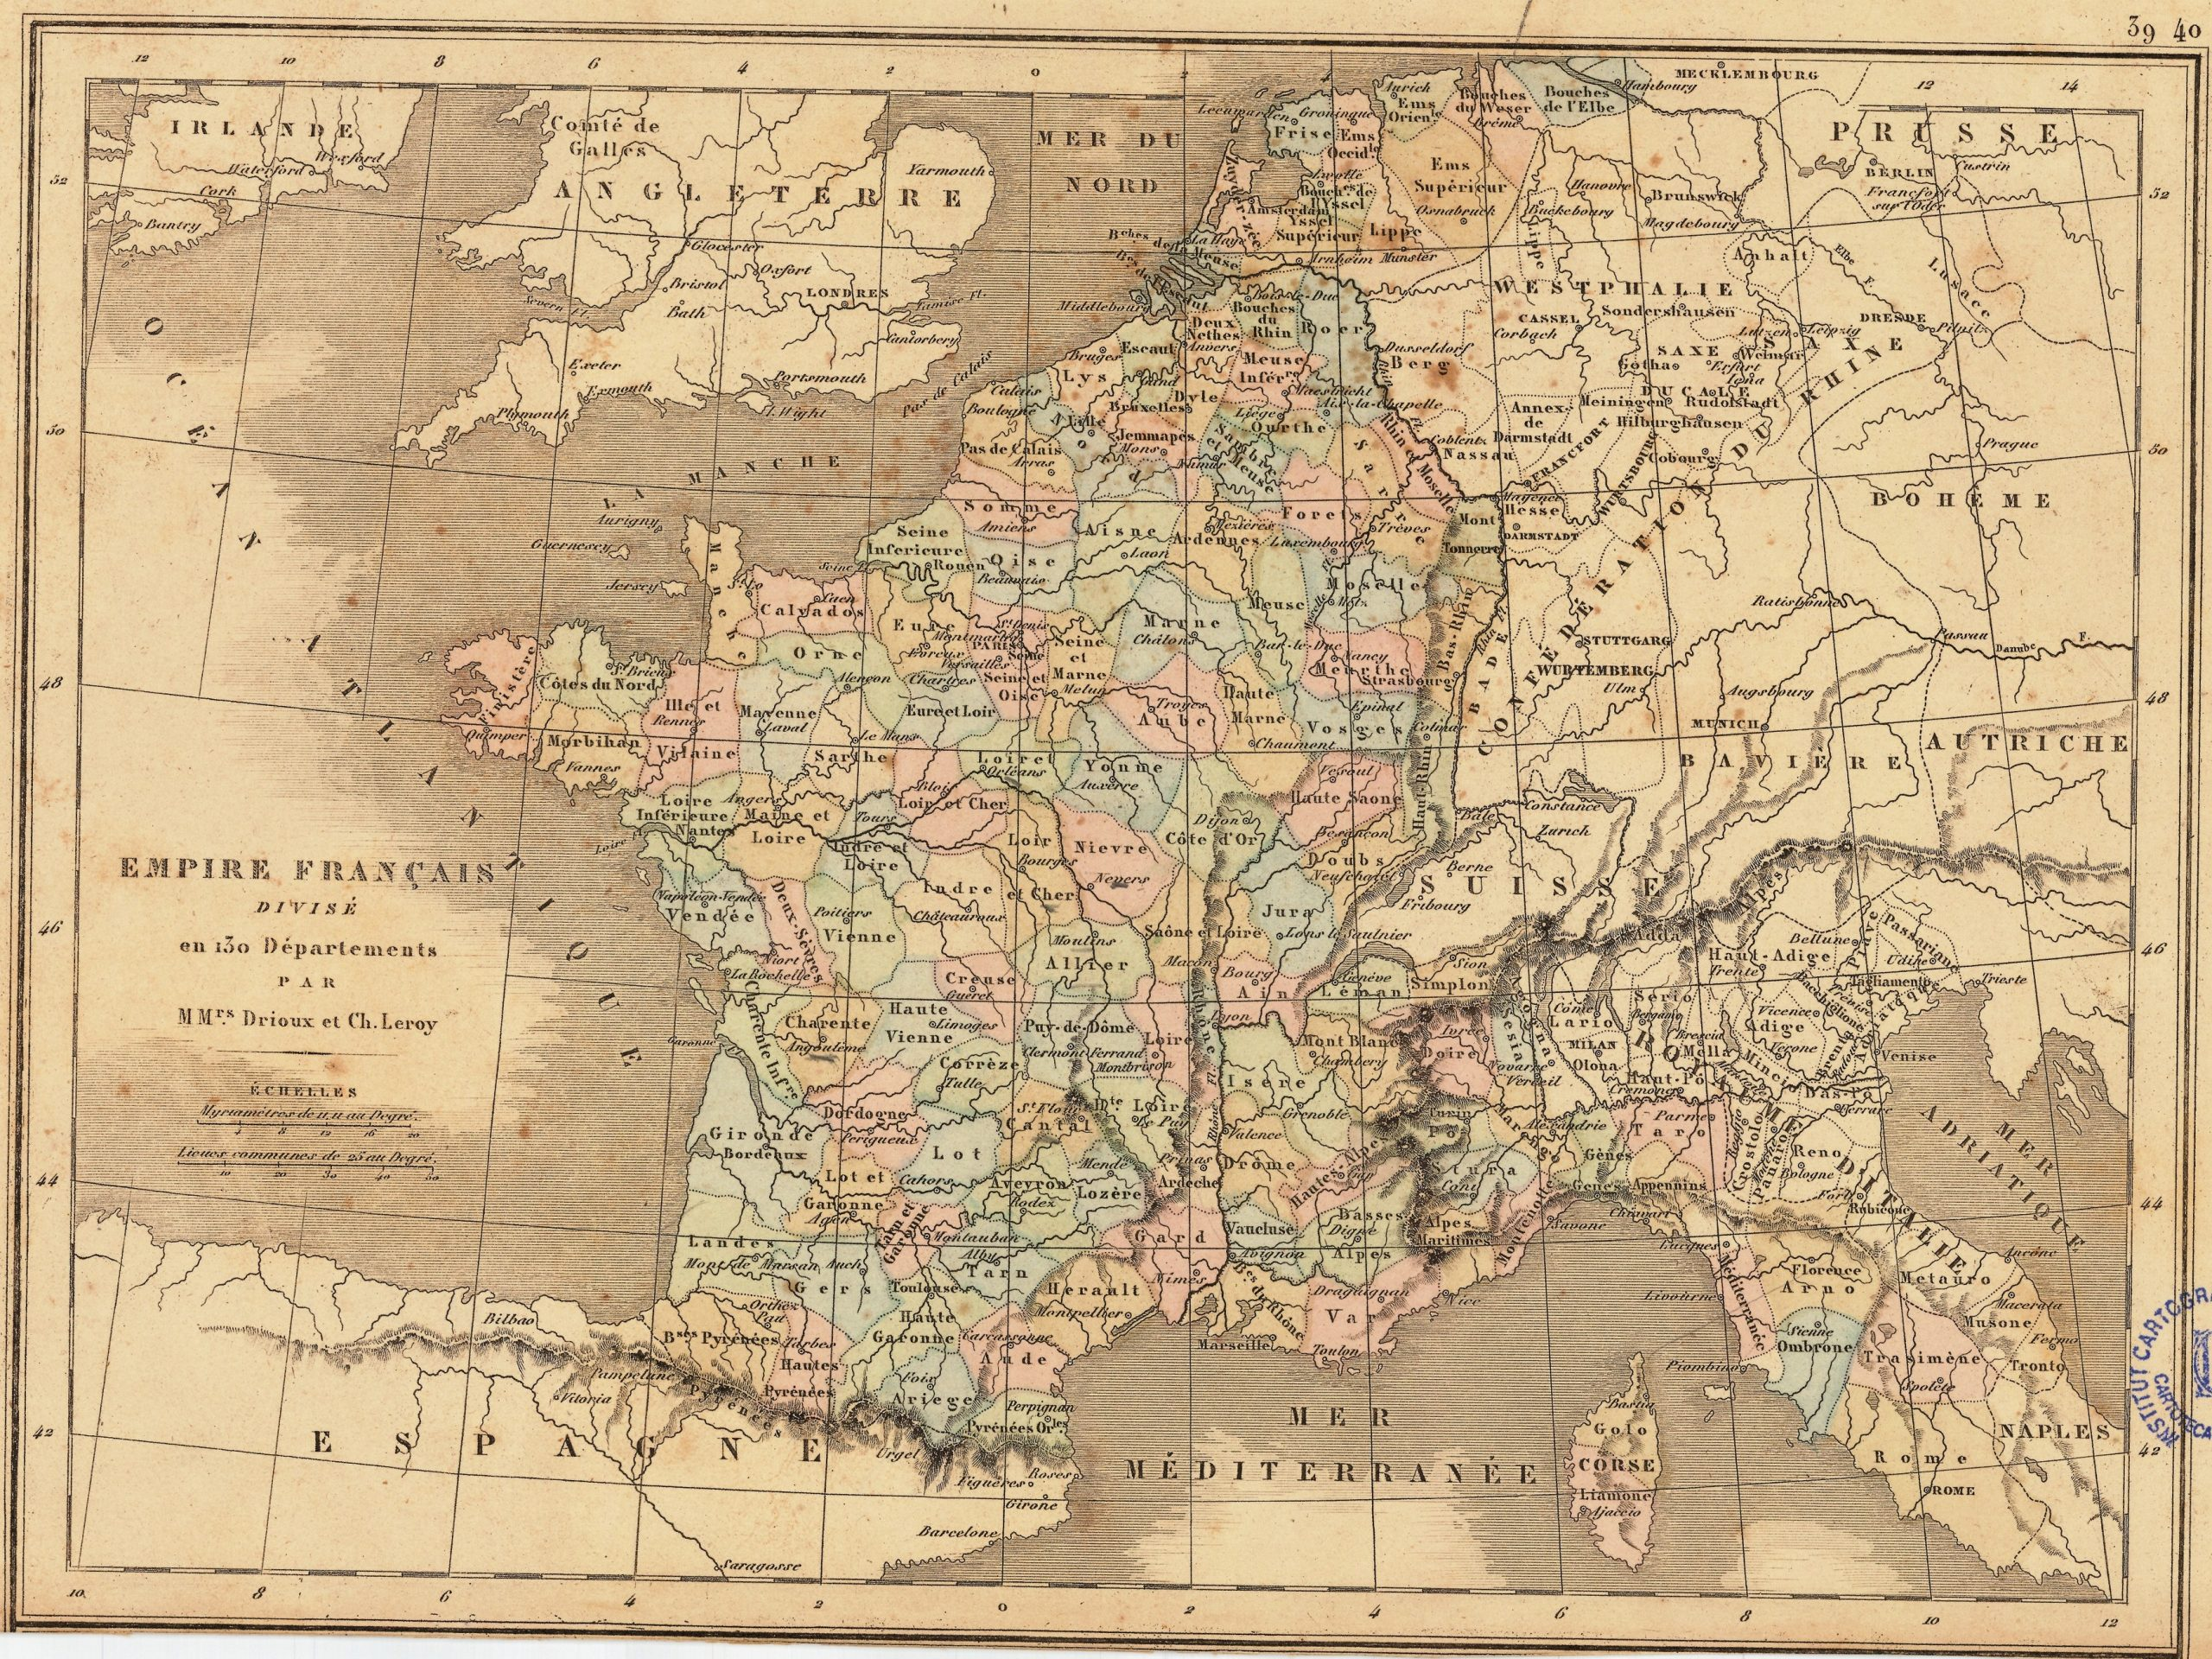 130 Departments Of The First French Empire - Wikipedia intérieur Departement Francais 39